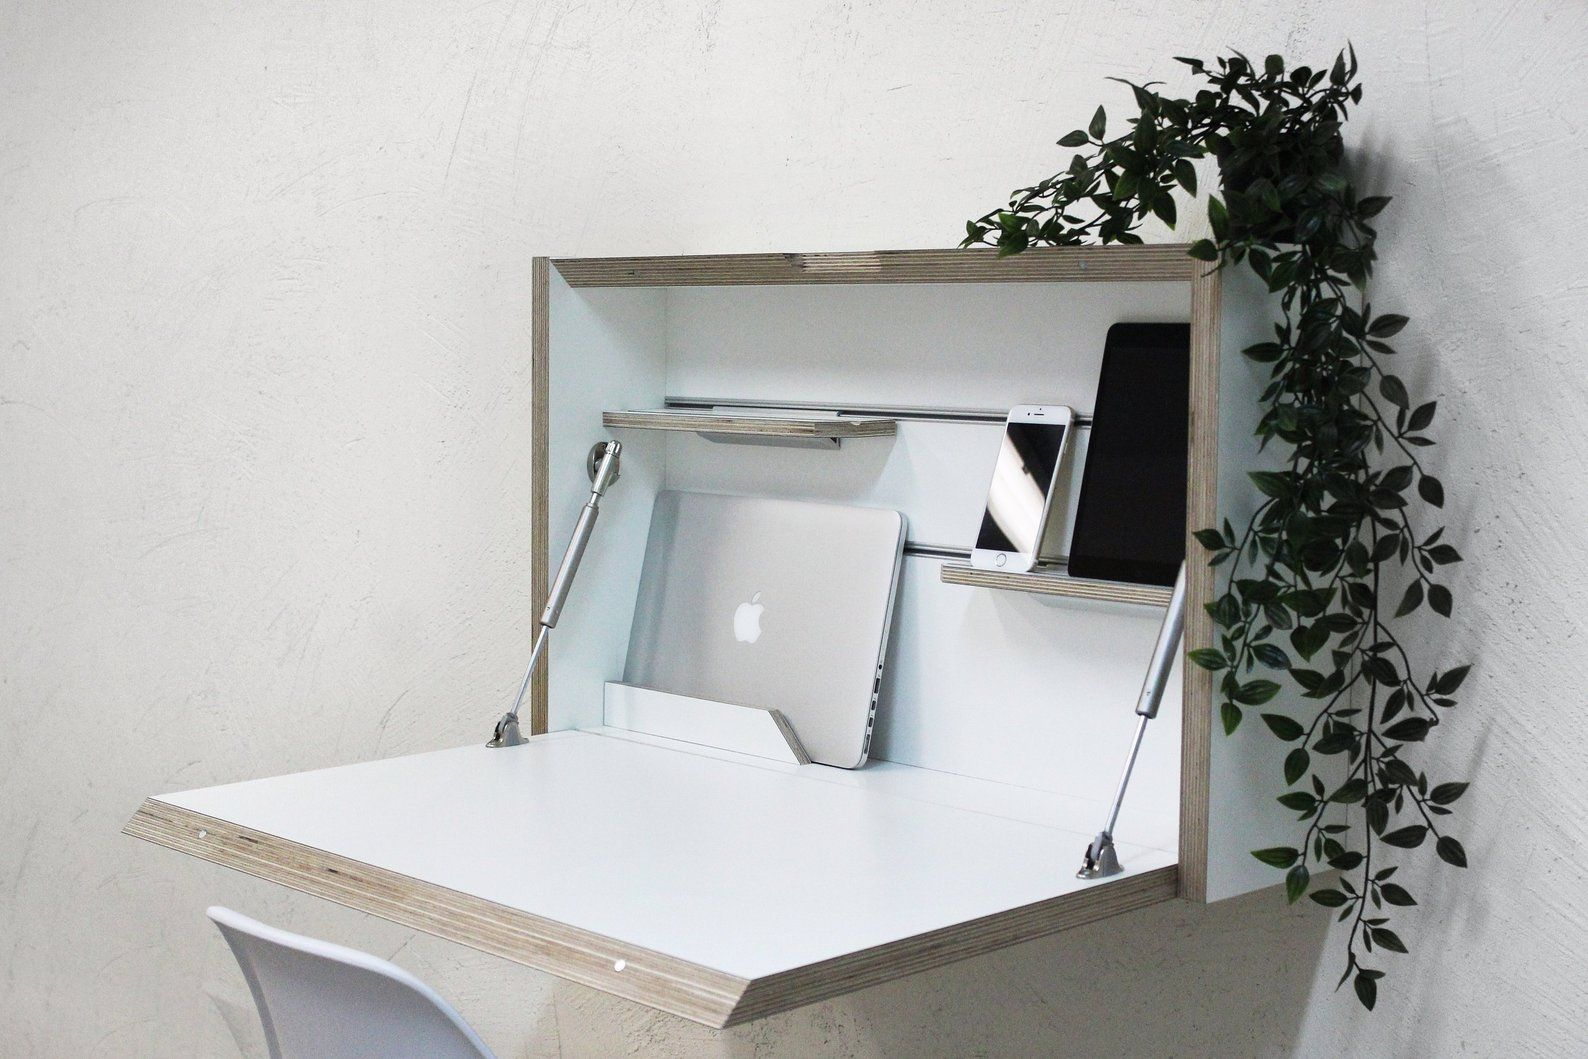 Wall Mounted Folding Desk Space Saving Desk Office Desk Secretary Desk Floating Desk White Plywood Table Home Office Desk White Modern Desk Space Saving Desk Folding Desk Desks For Small Spaces